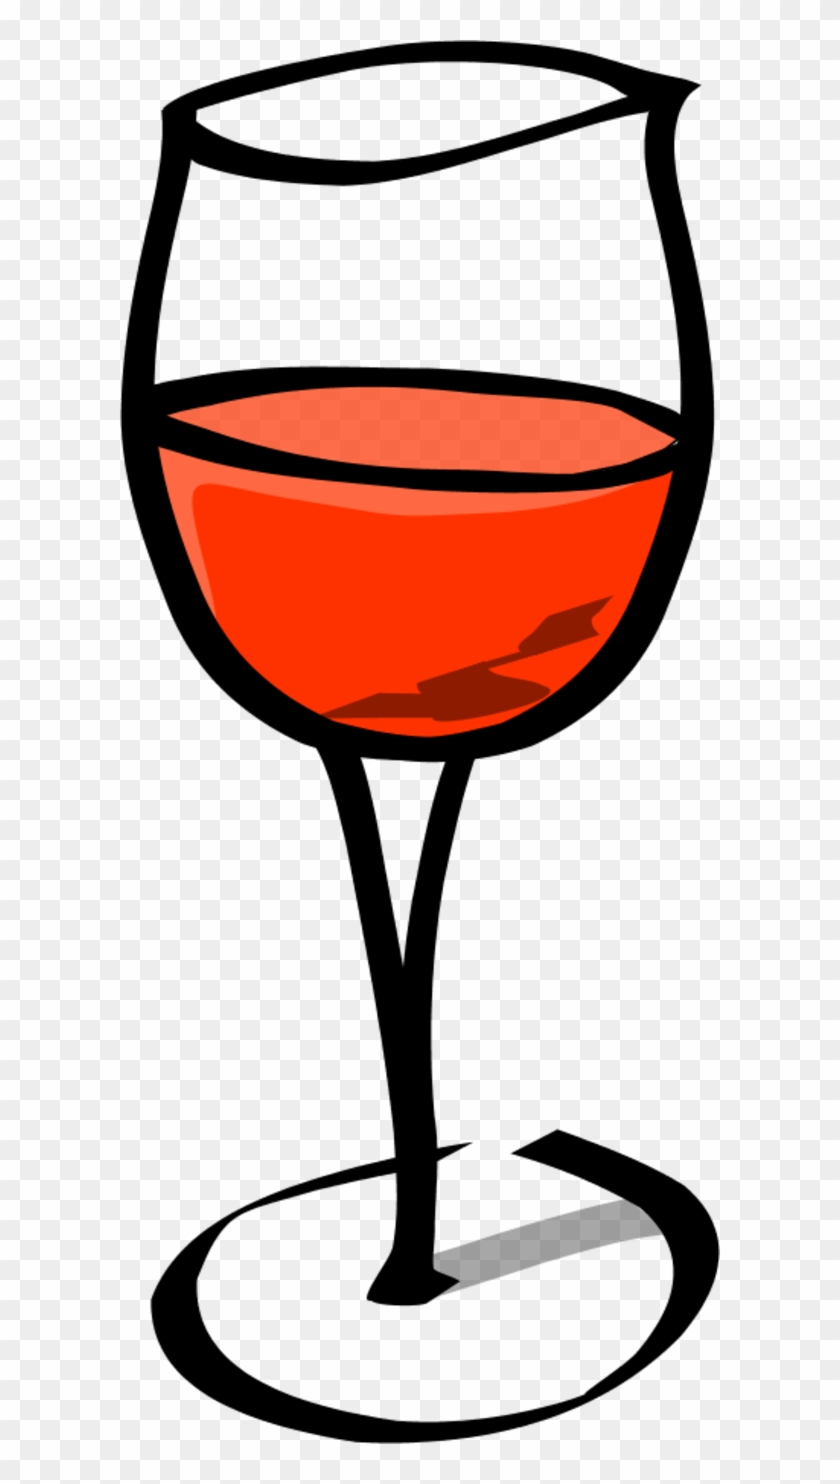 Wine Glass Png Clipart.